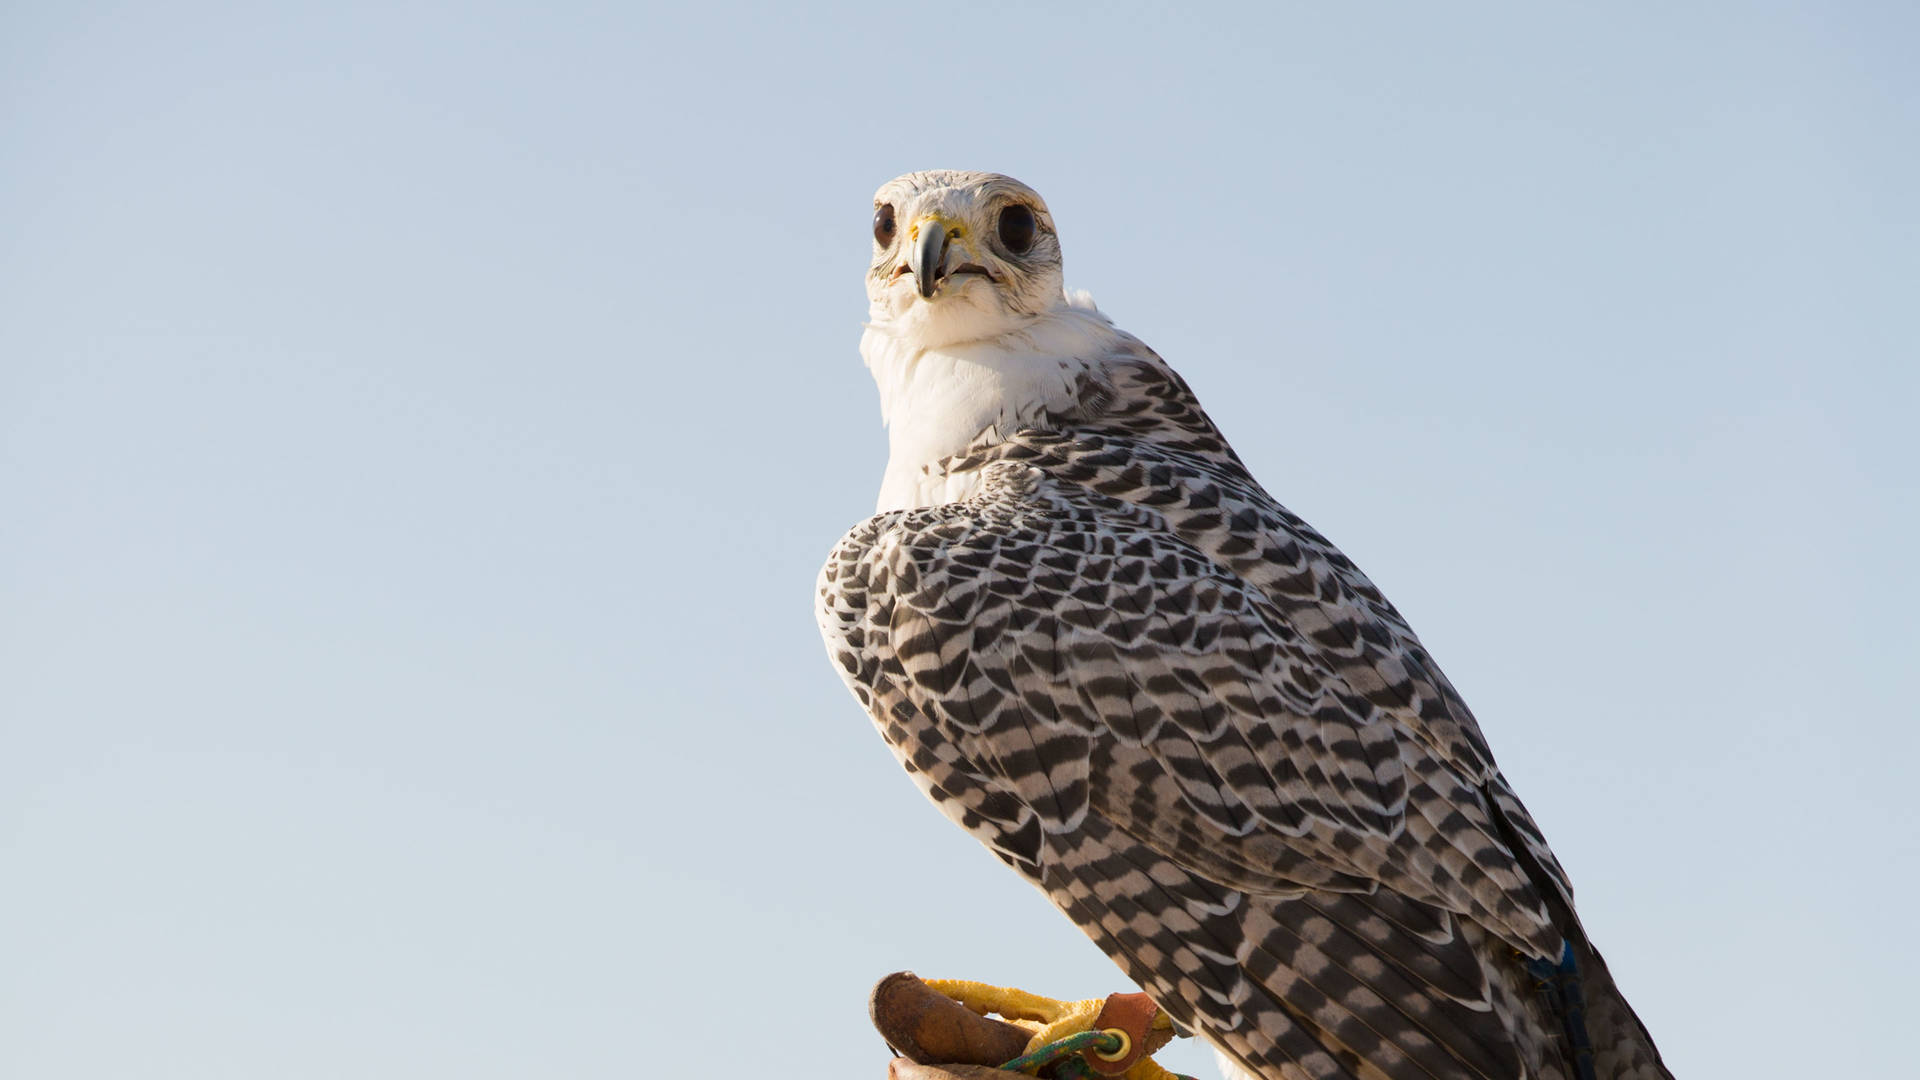 Falcon being trained